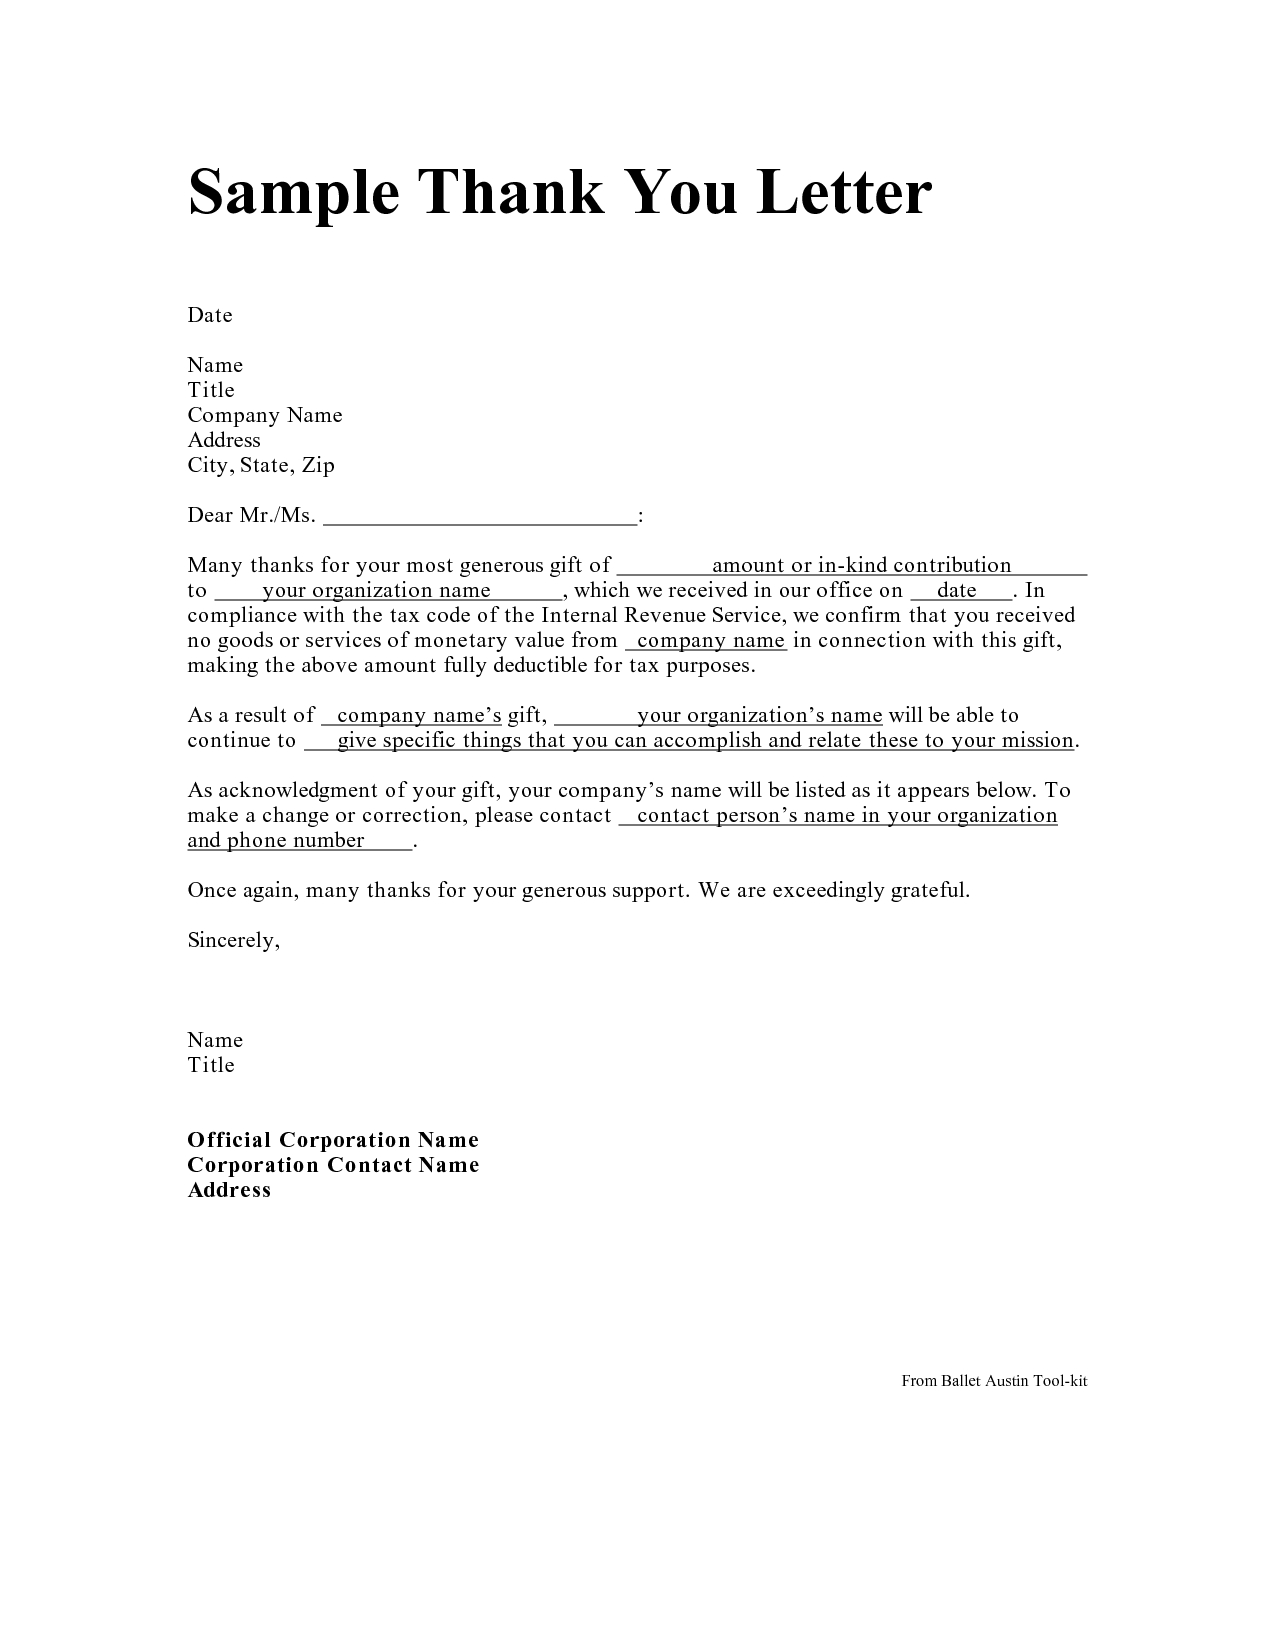 interview thank you letter template Collection-Personal Thank You Letter Personal Thank You Letter Samples Writing Thank You Notes Thank You Note Examples 1-o